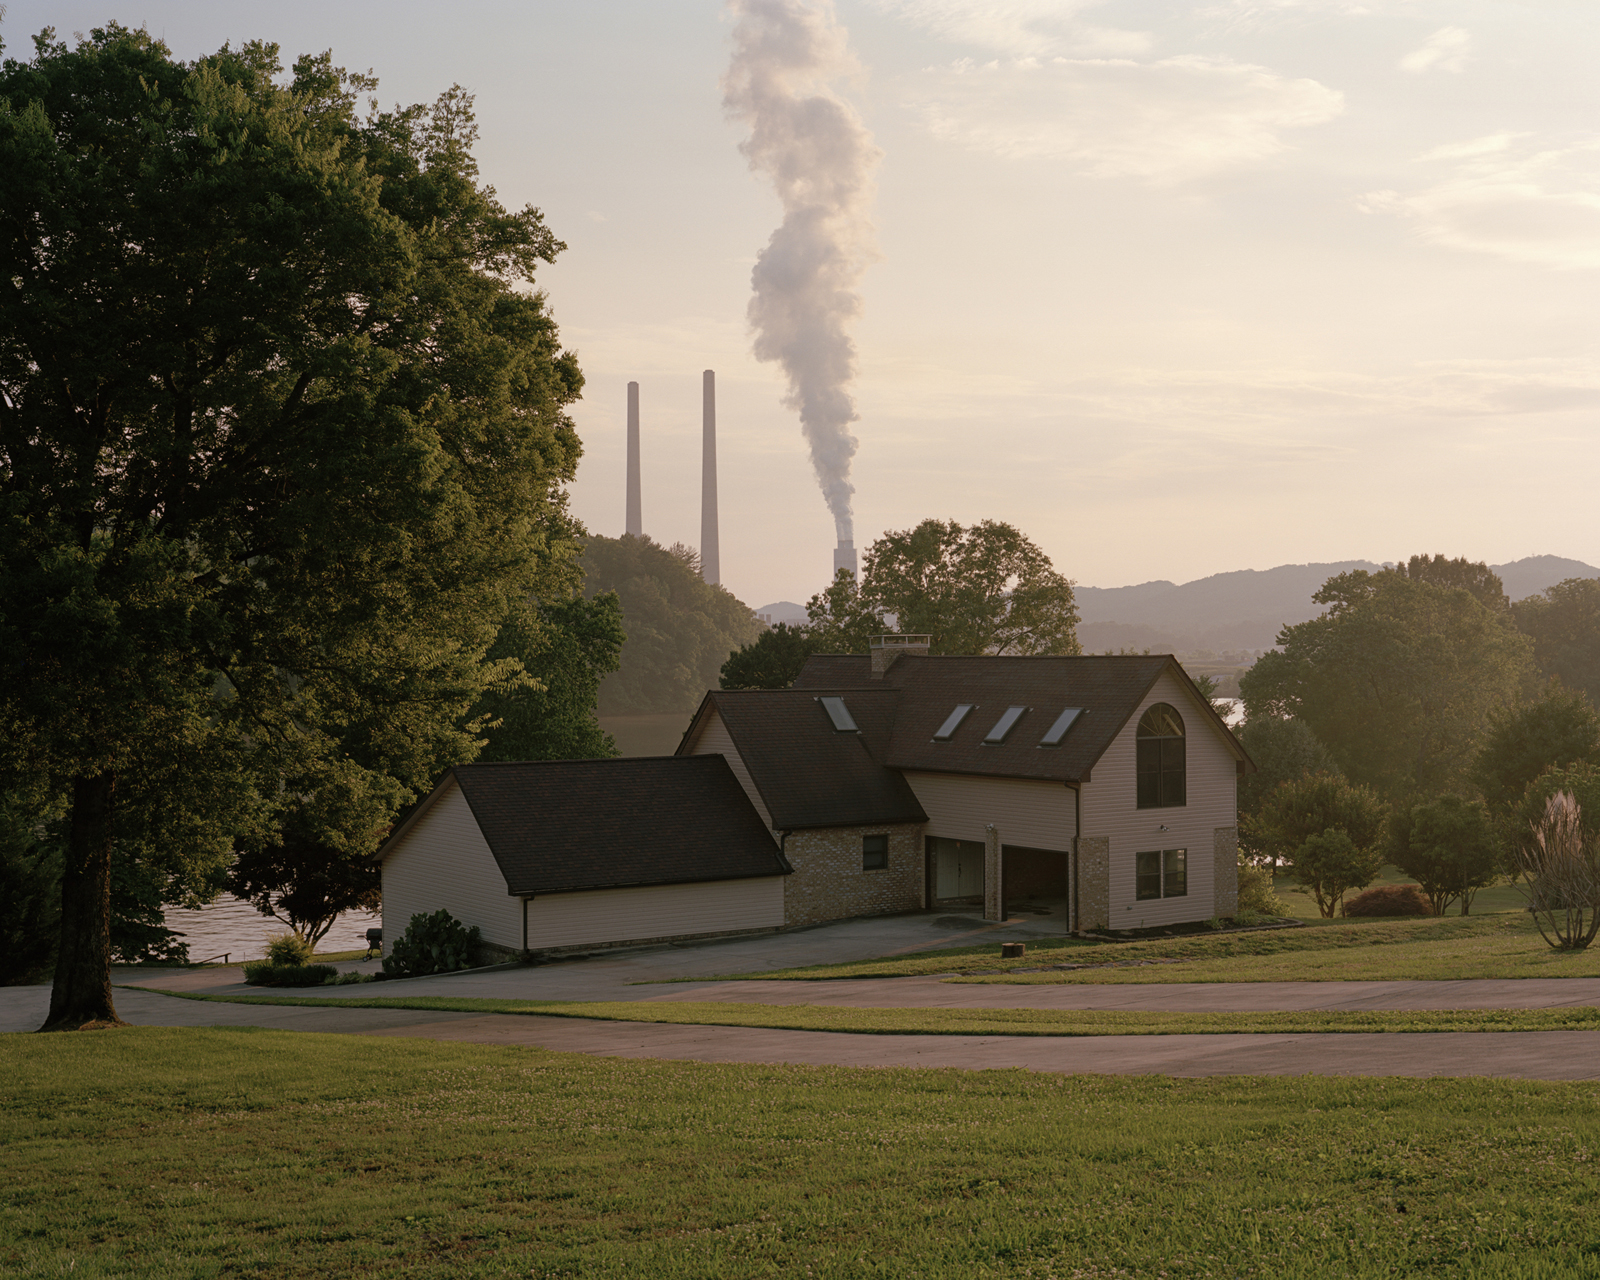 House purchased by the TVA, Clinch River, Kingston, Tennessee  2014